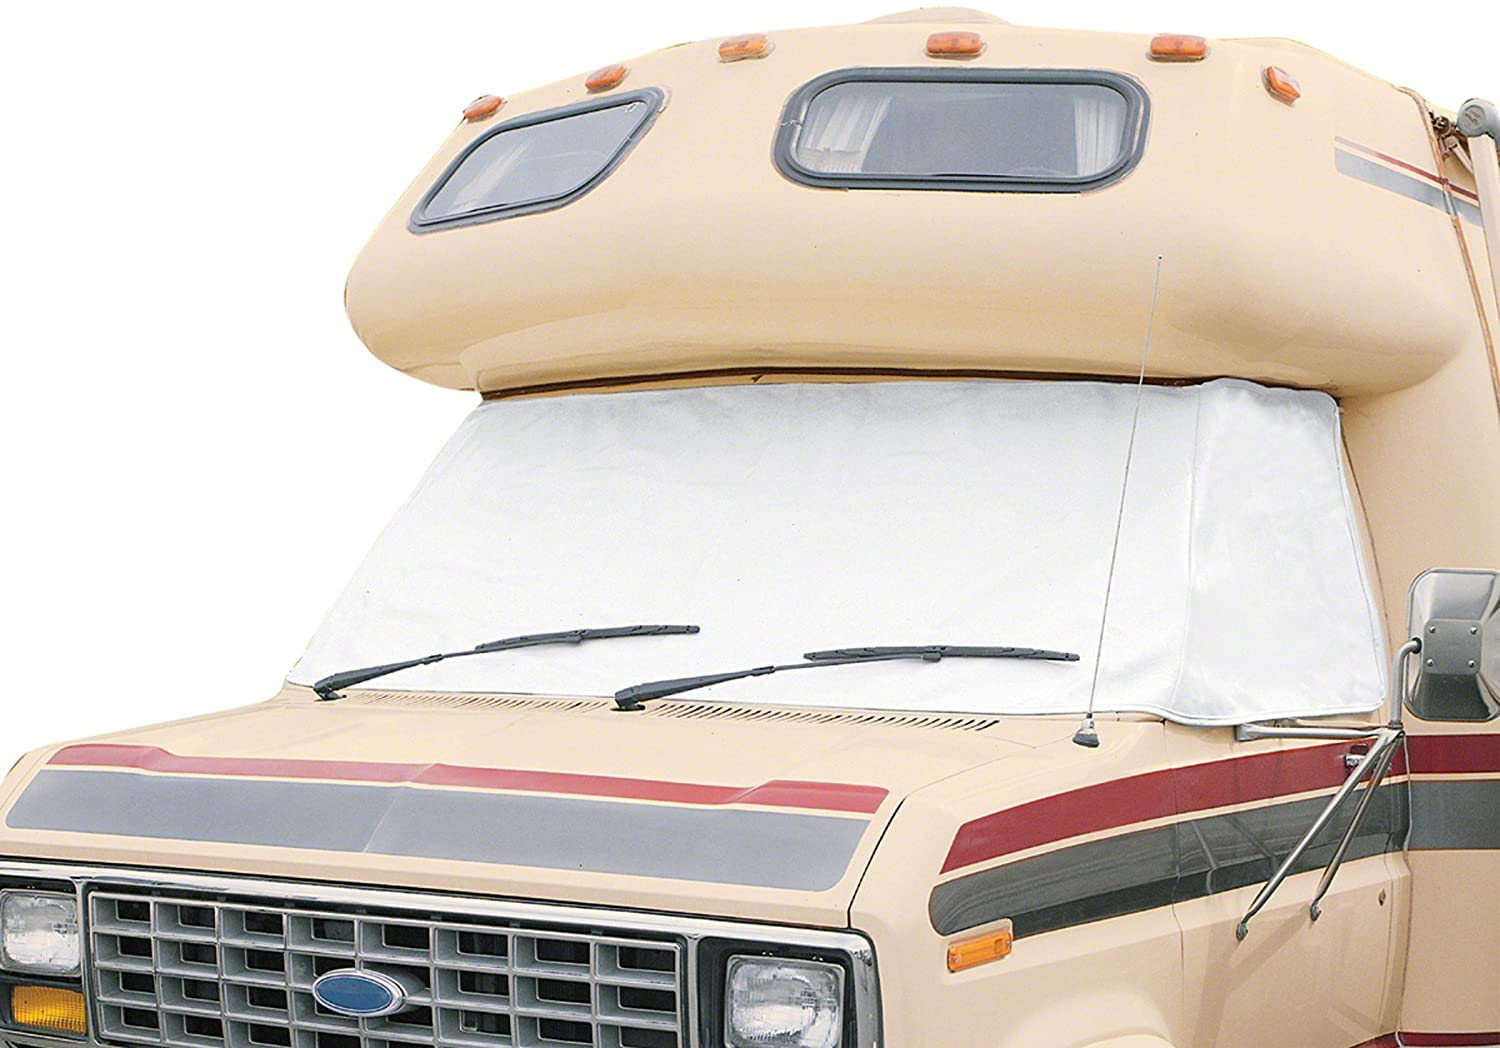 Classic Accessories 78684 Snow White RV Windshield Cover, Fits Ford '92-2003 Fits Ford ' 92-2003